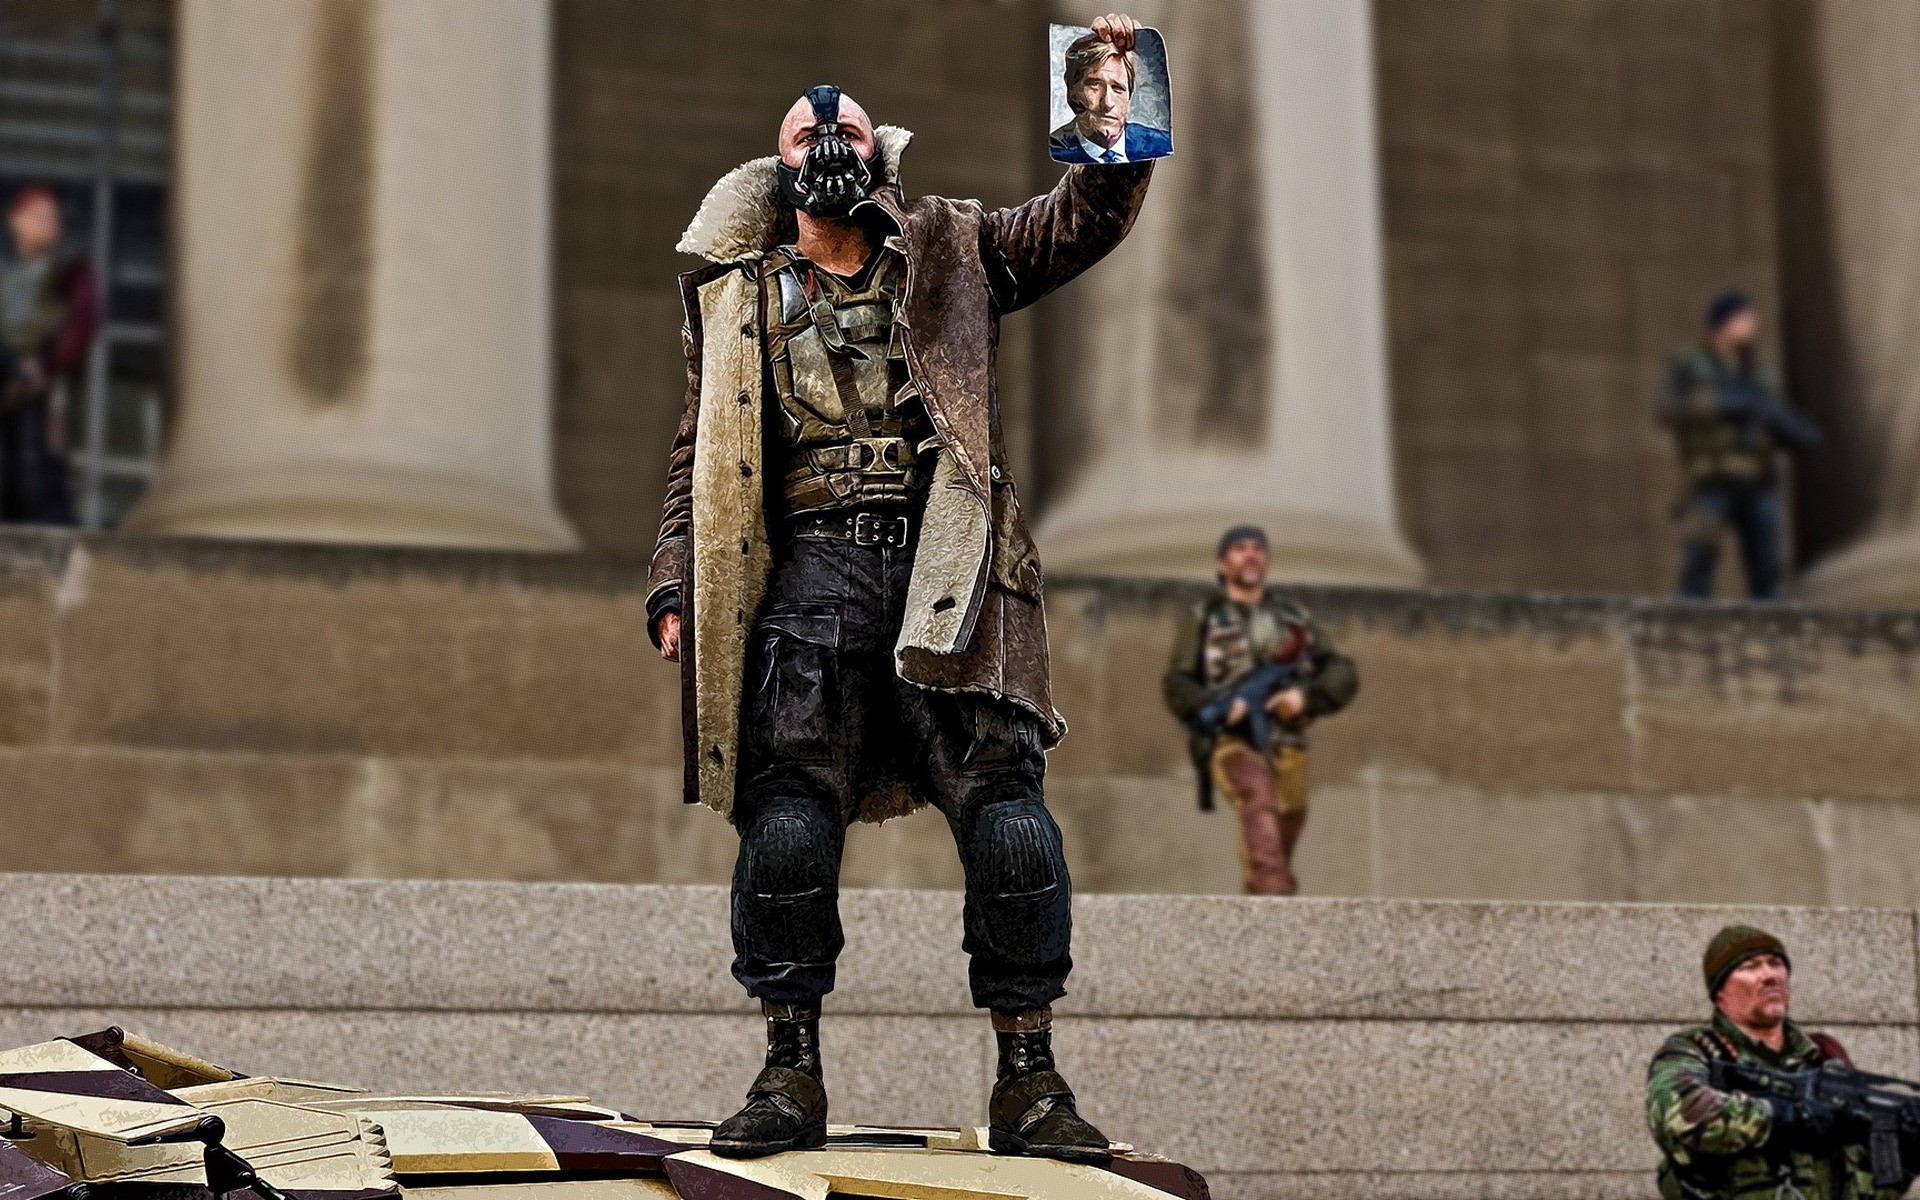 The Dark Knight Rises Bane Android Wallpapers For Free